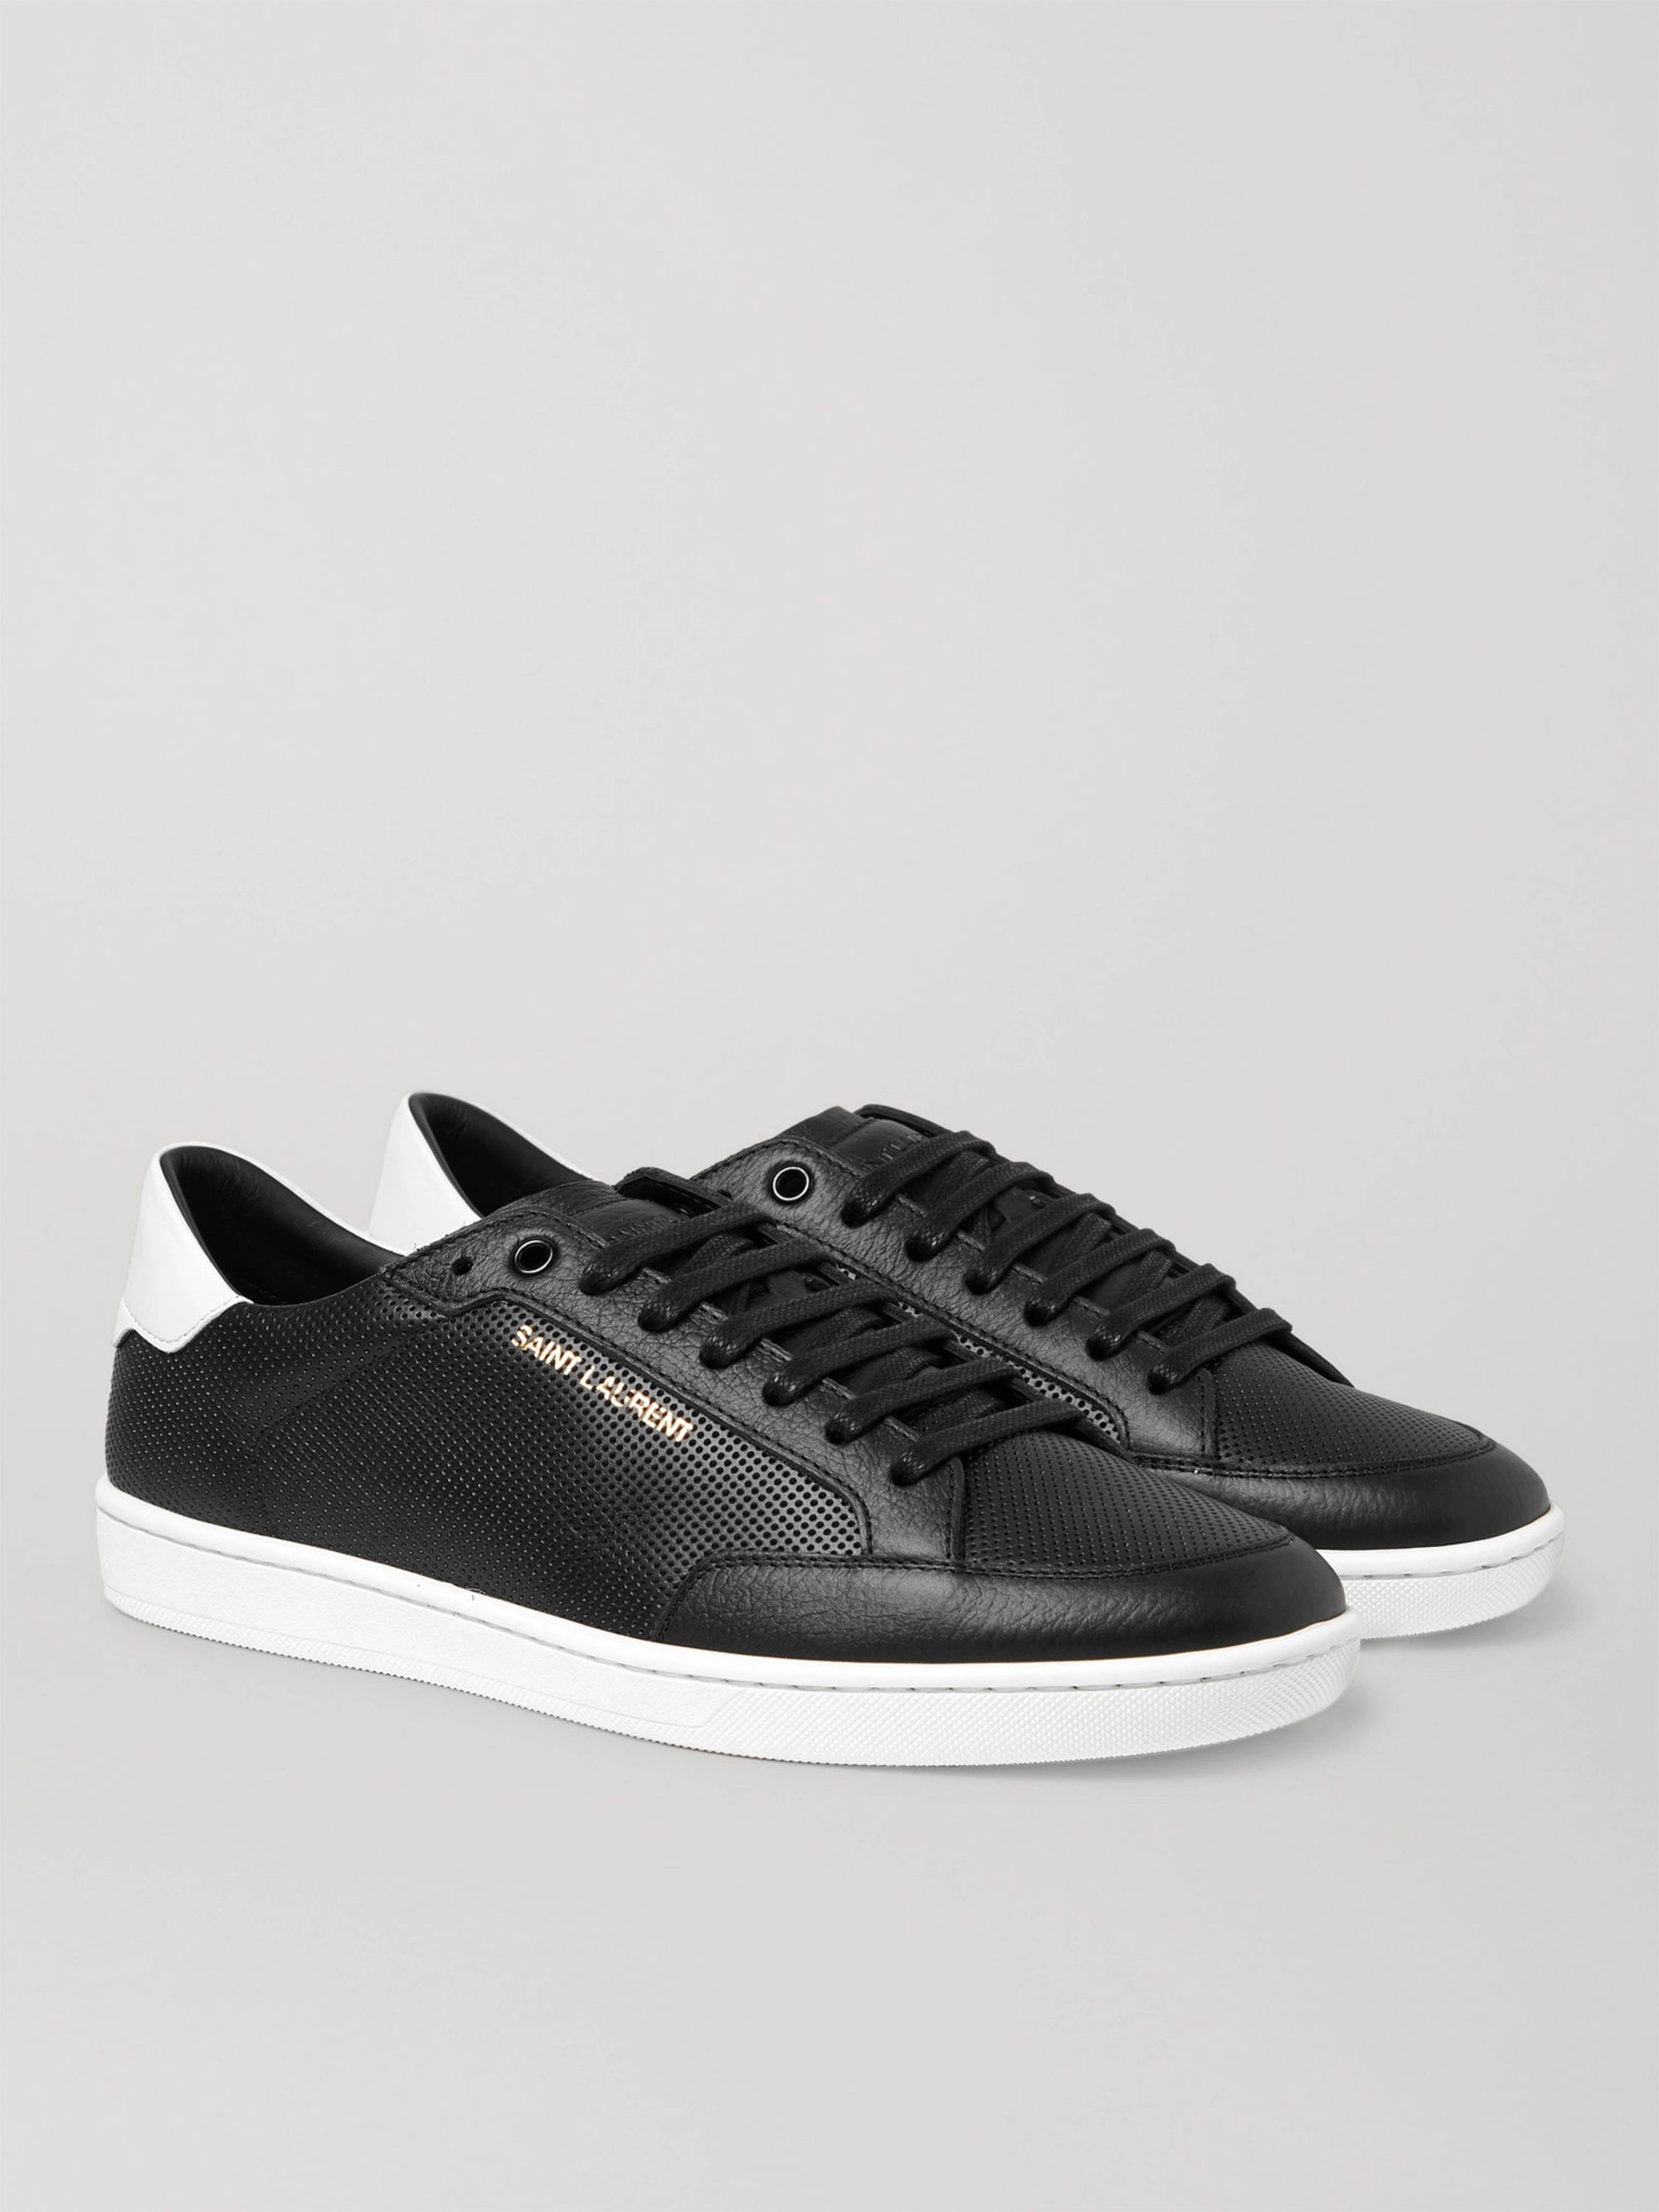 SAINT LAURENT Court Classic SL/10 Perforated Leather Sneakers